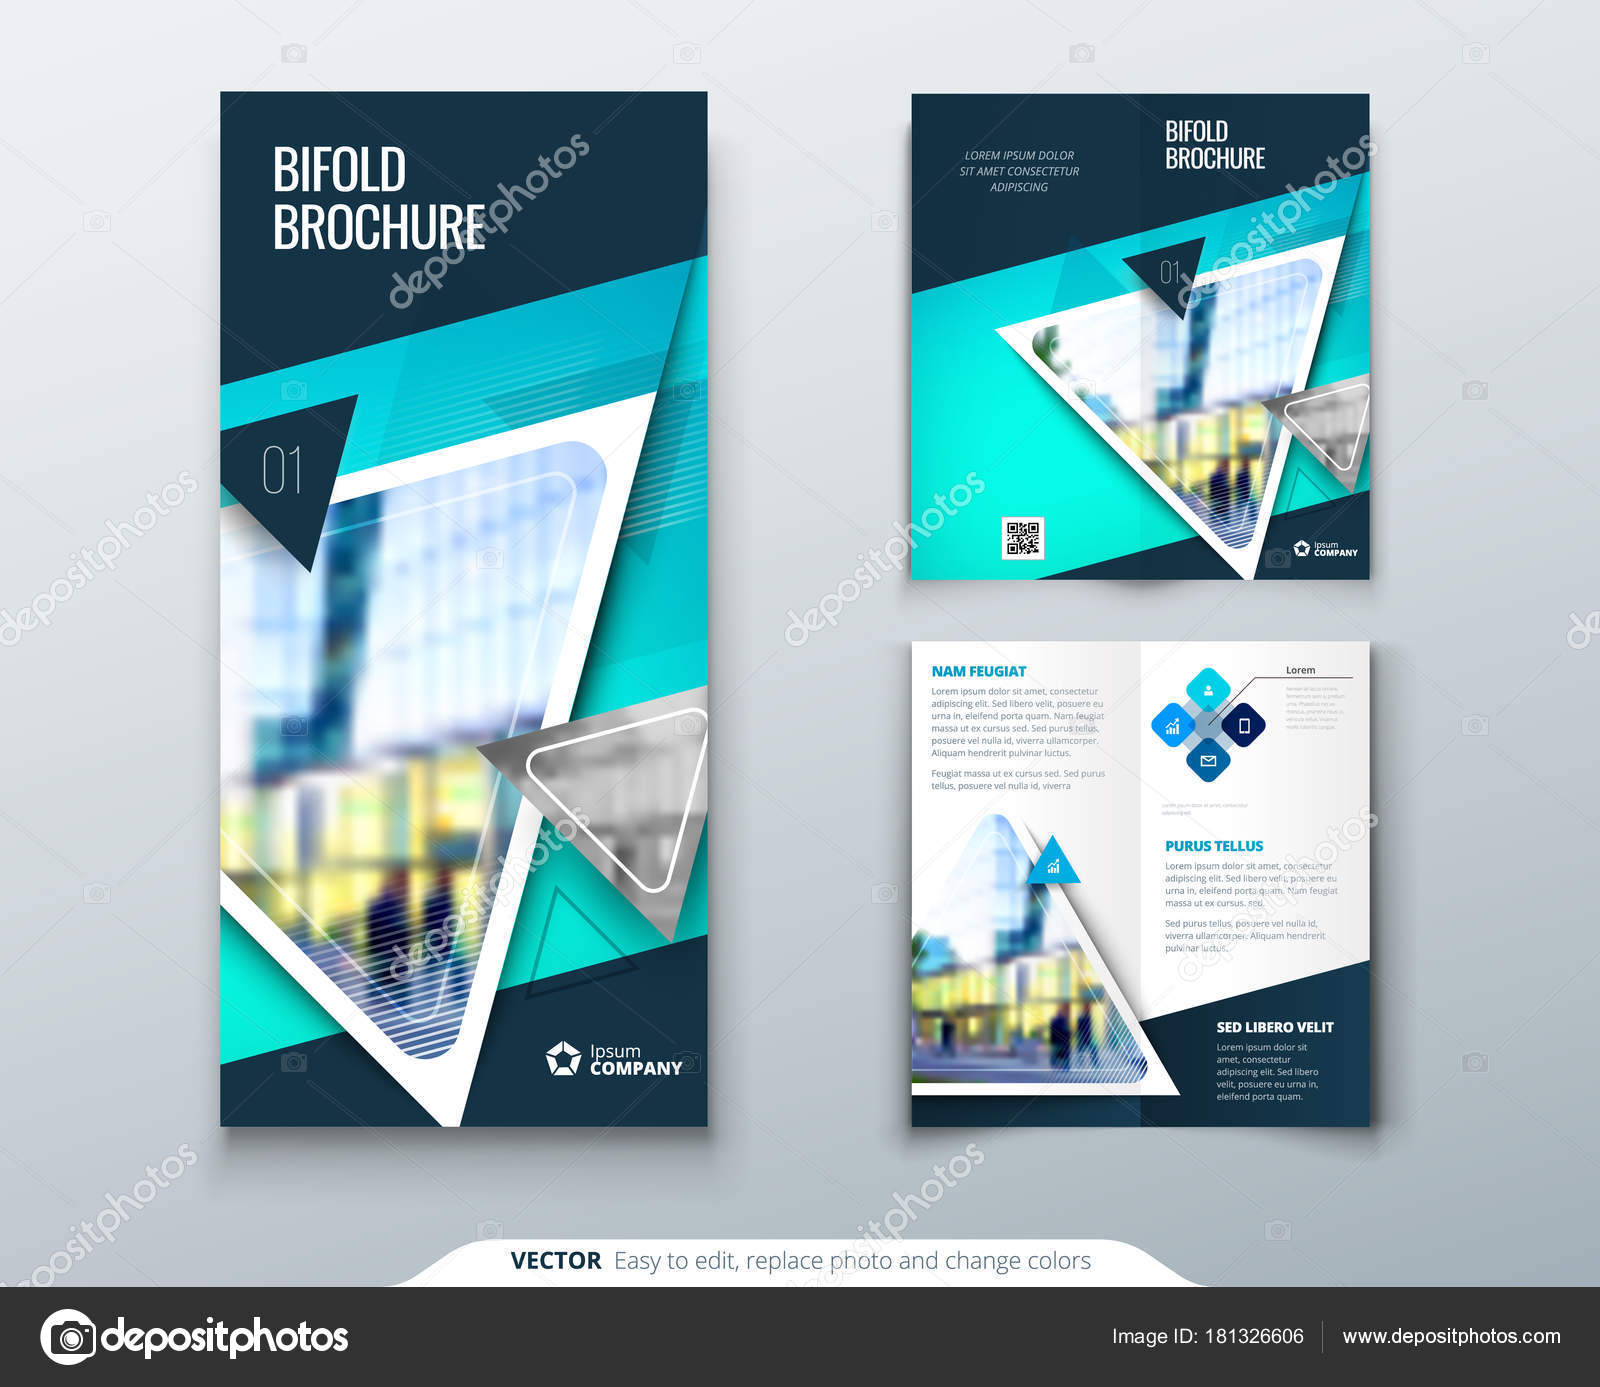 Bifold Brochure Design Teal Template For Bi Fold Flyer Layout With